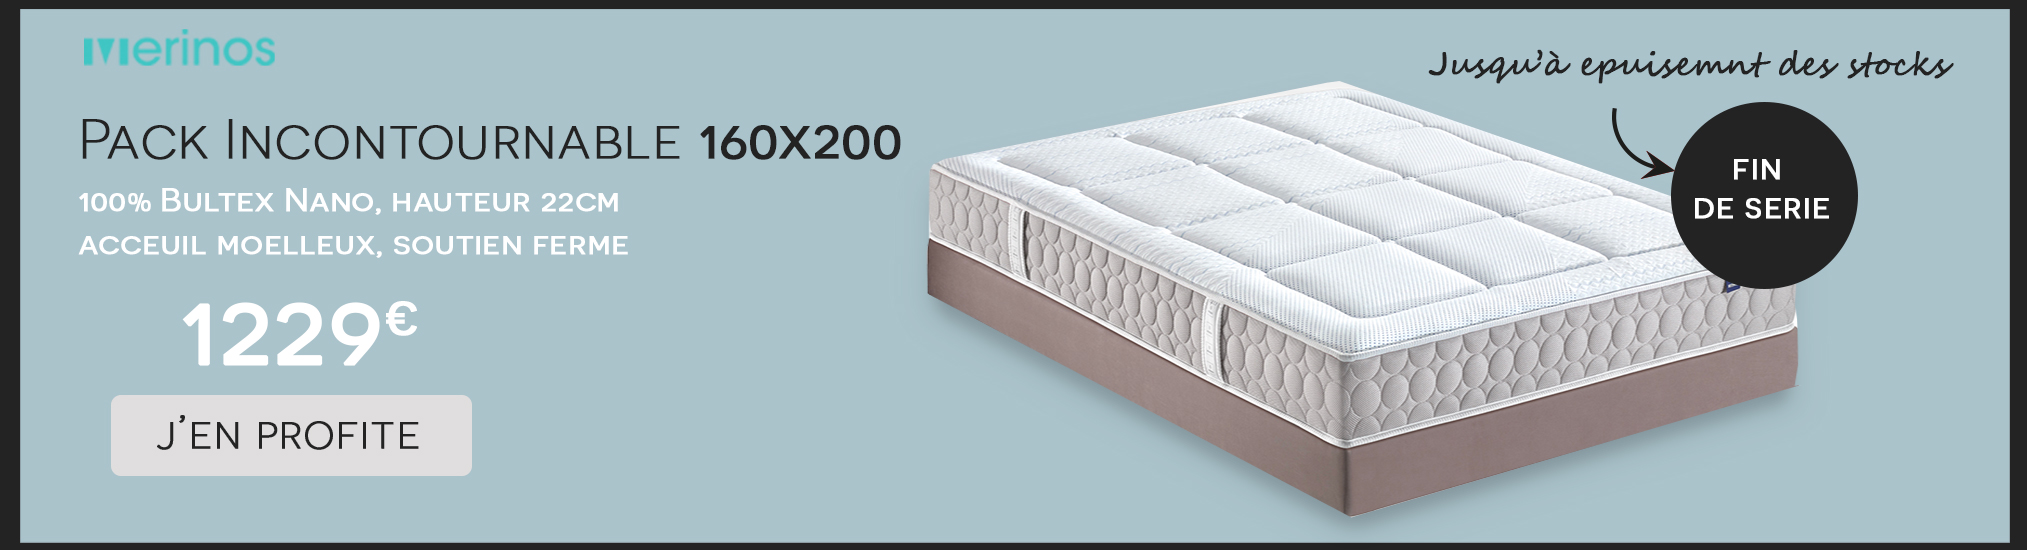 Pack Incontournable 160x200